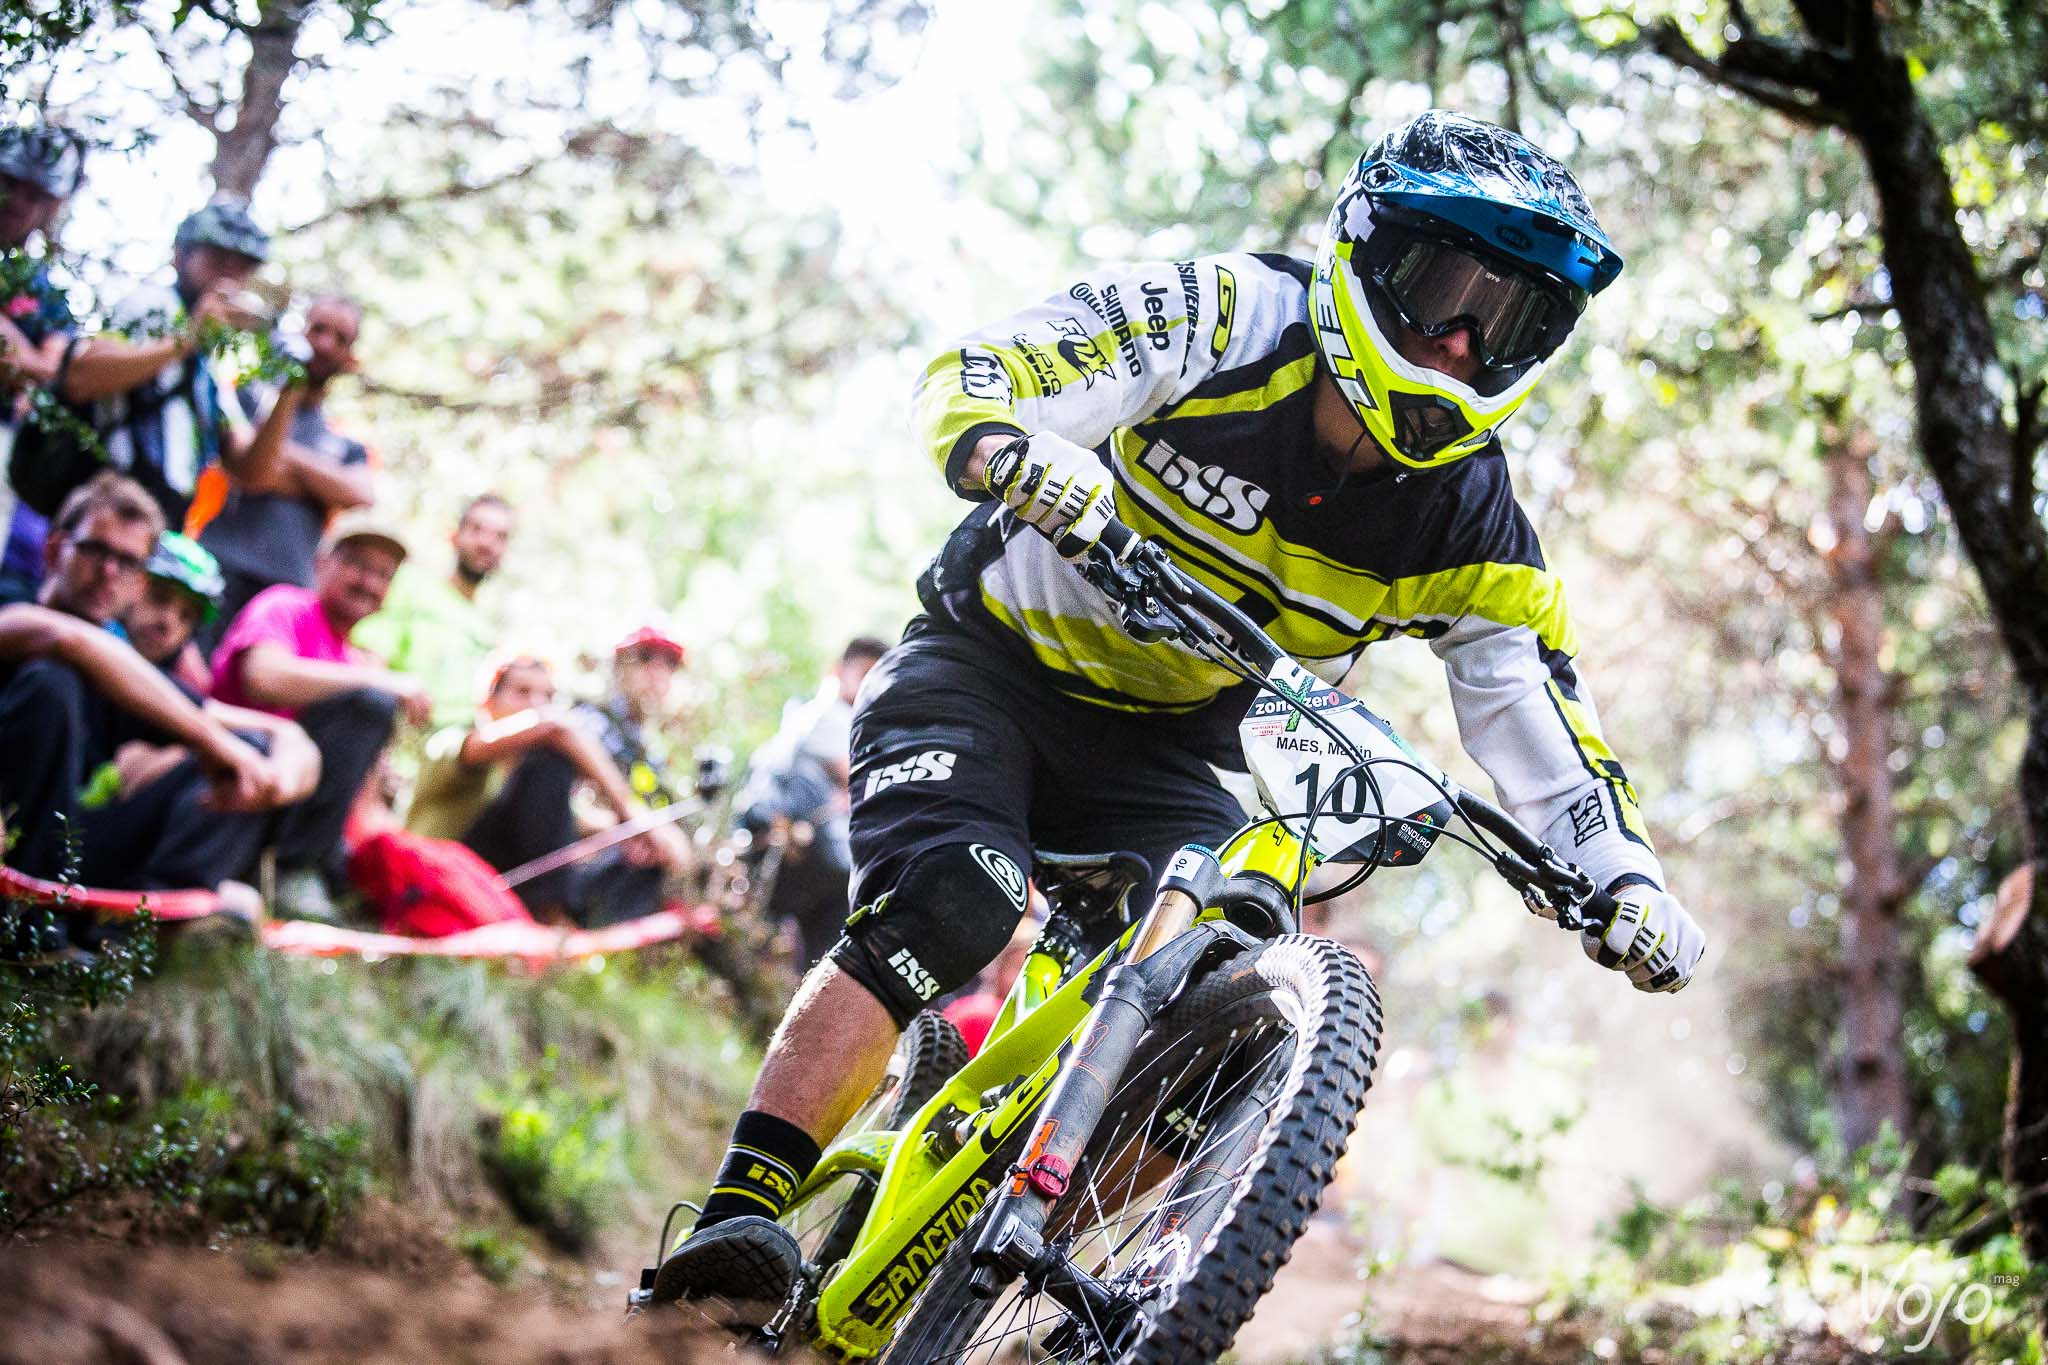 Enduro_World_Series_7_Spain_Ainsa_Zona_Zero_2015_Copyright_VojoMag-7